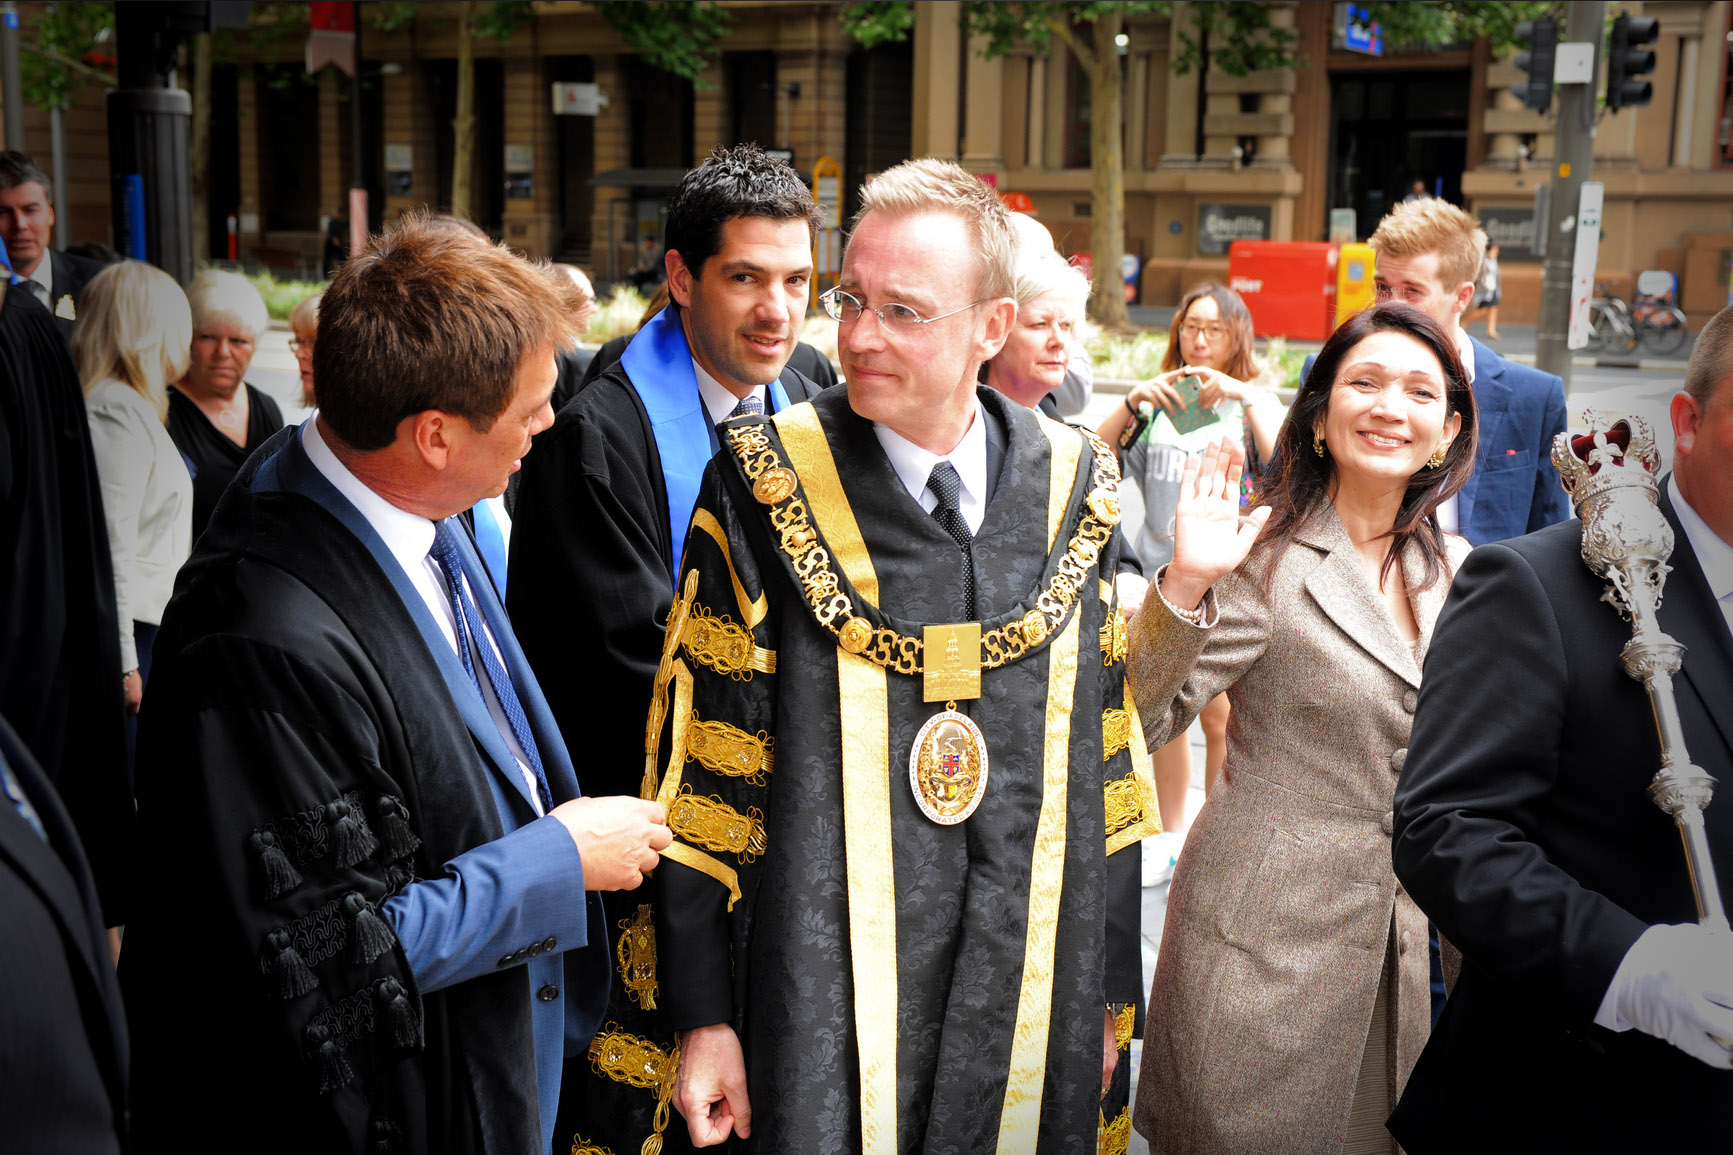 Lord Mayor Martin Haese and Lady Mayoress Genevieve Theseira on King William Street